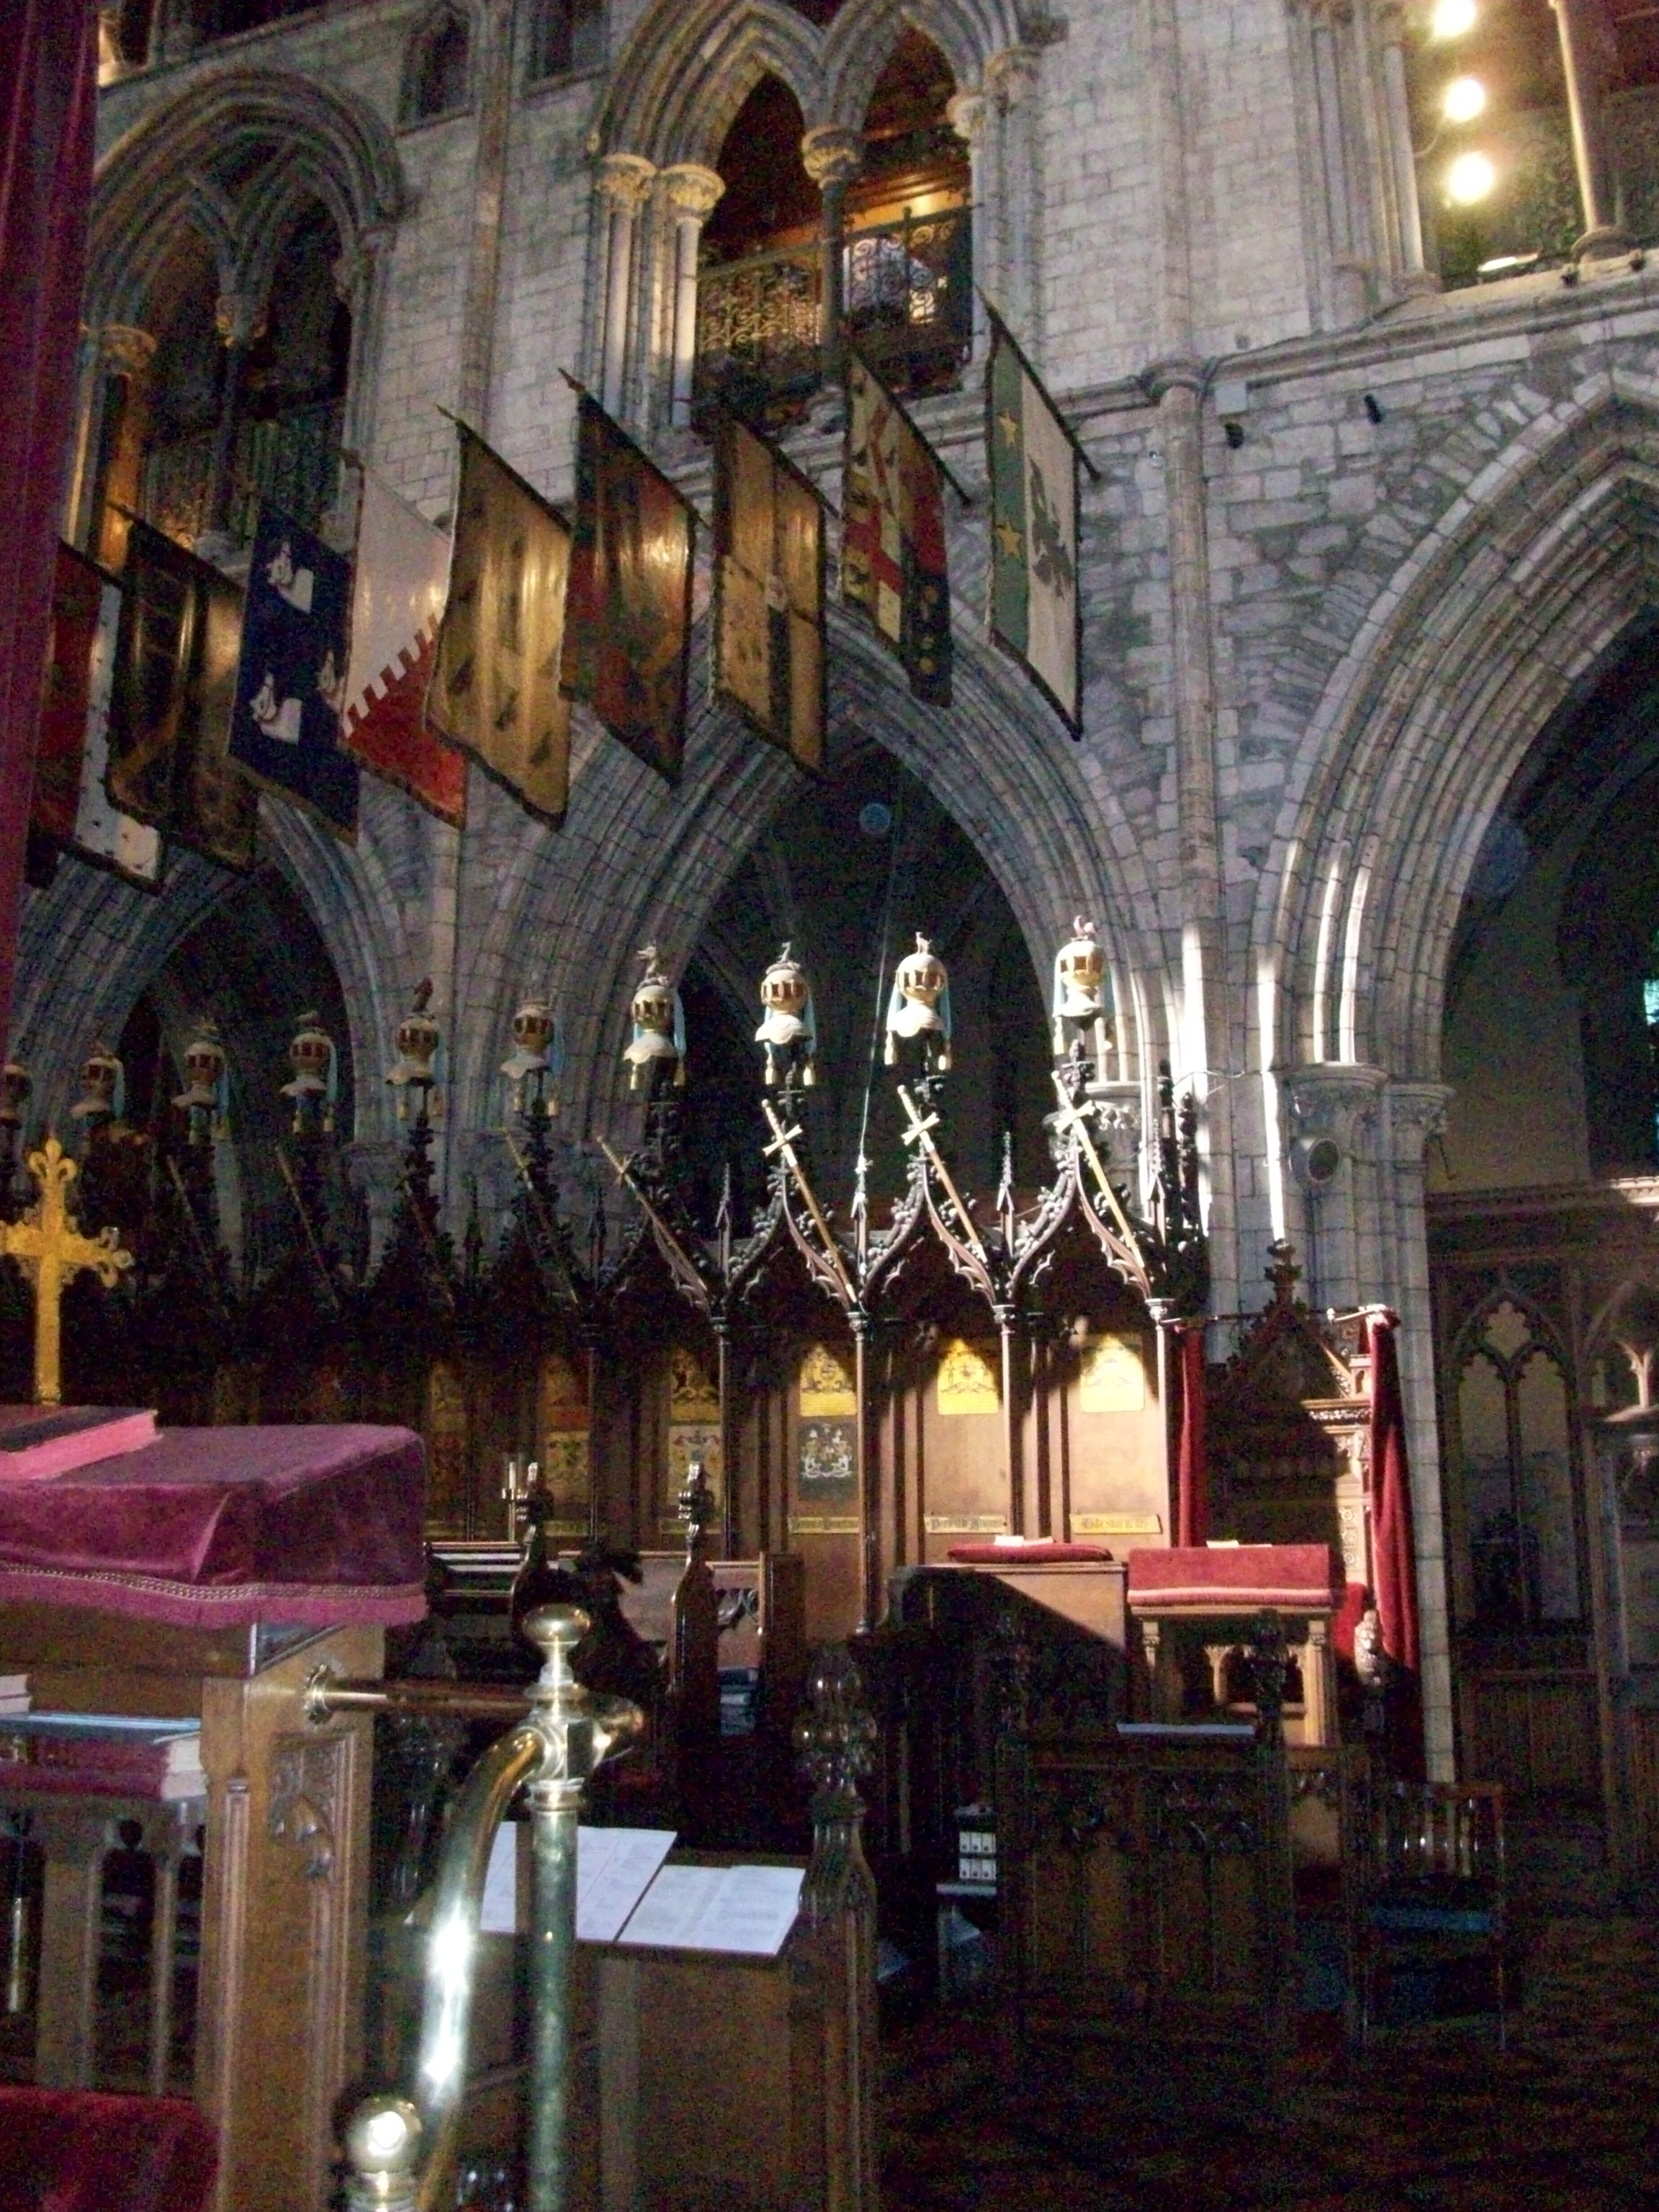 St. Patrick's Cathedral Choir Stalls and Organist